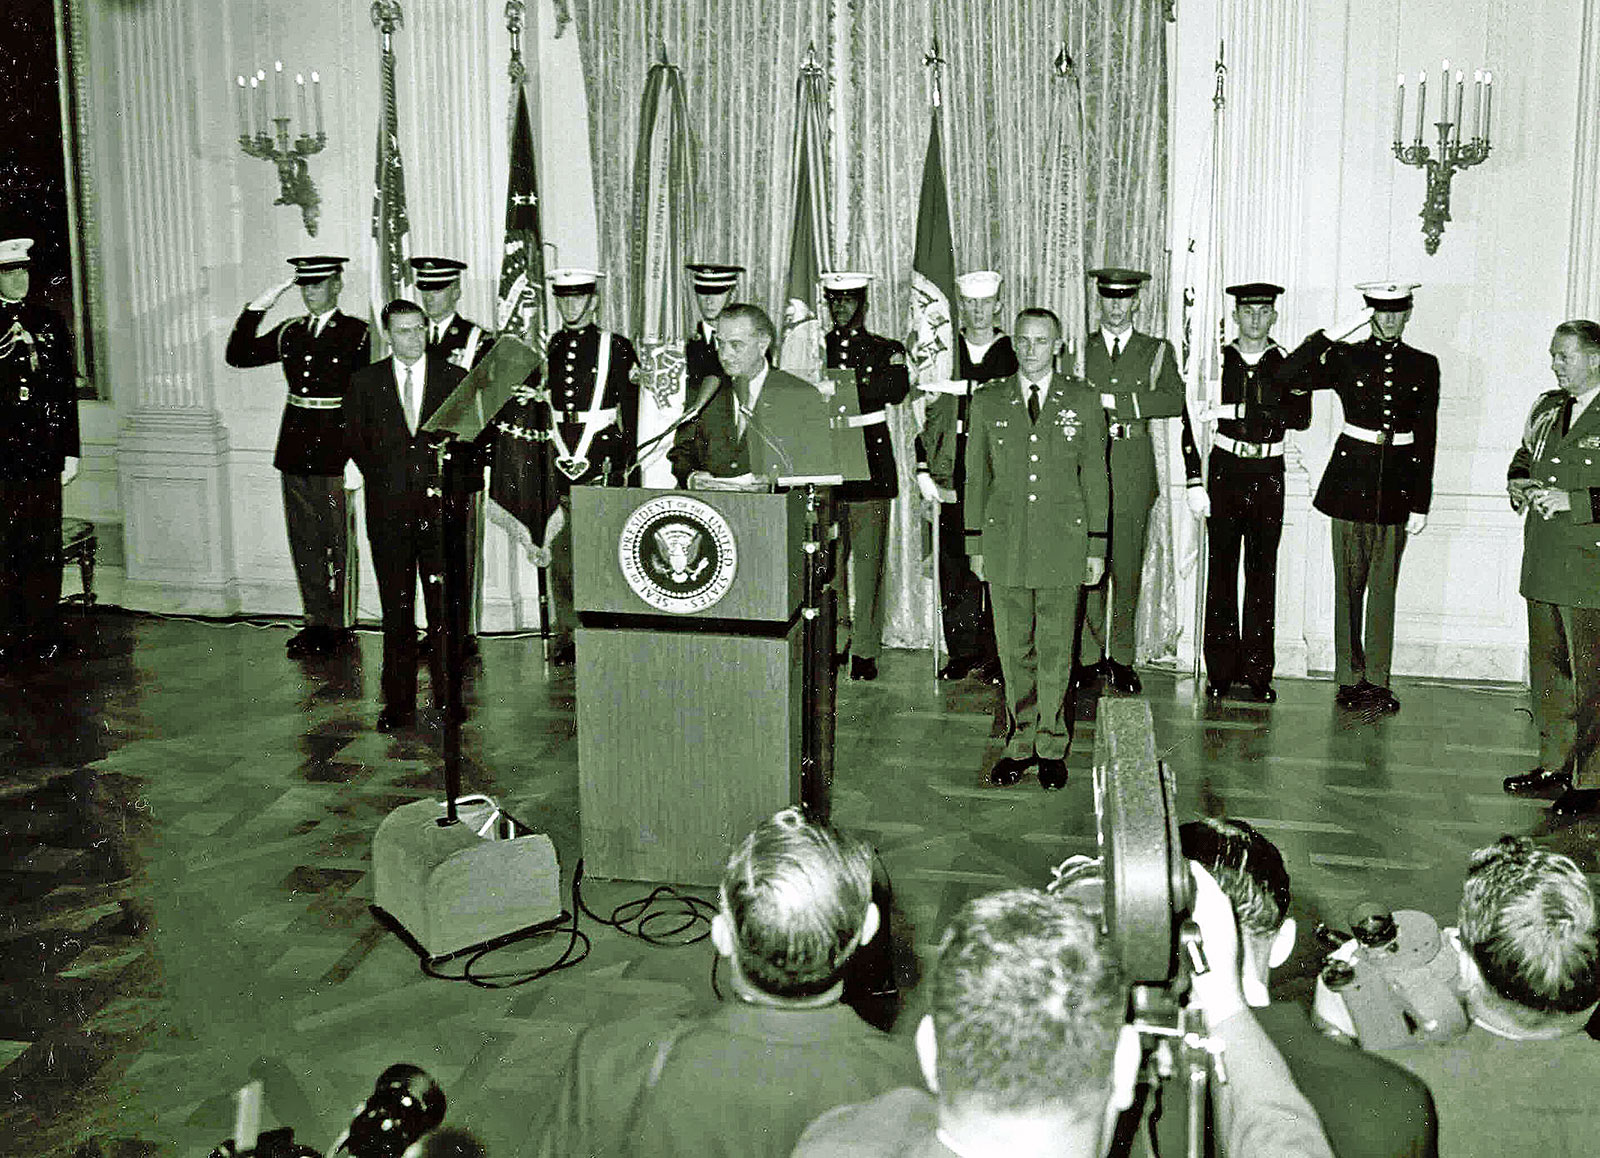 President Lyndon B. Johnson presented the first Medal of Honor of the Vietnam War to Captain Roger H. C. Donlon (standing right, at attention) at the White House on December 5, 1964, for his actions while at Camp Nam Dong in Vietnam. (U.S. Army photo)